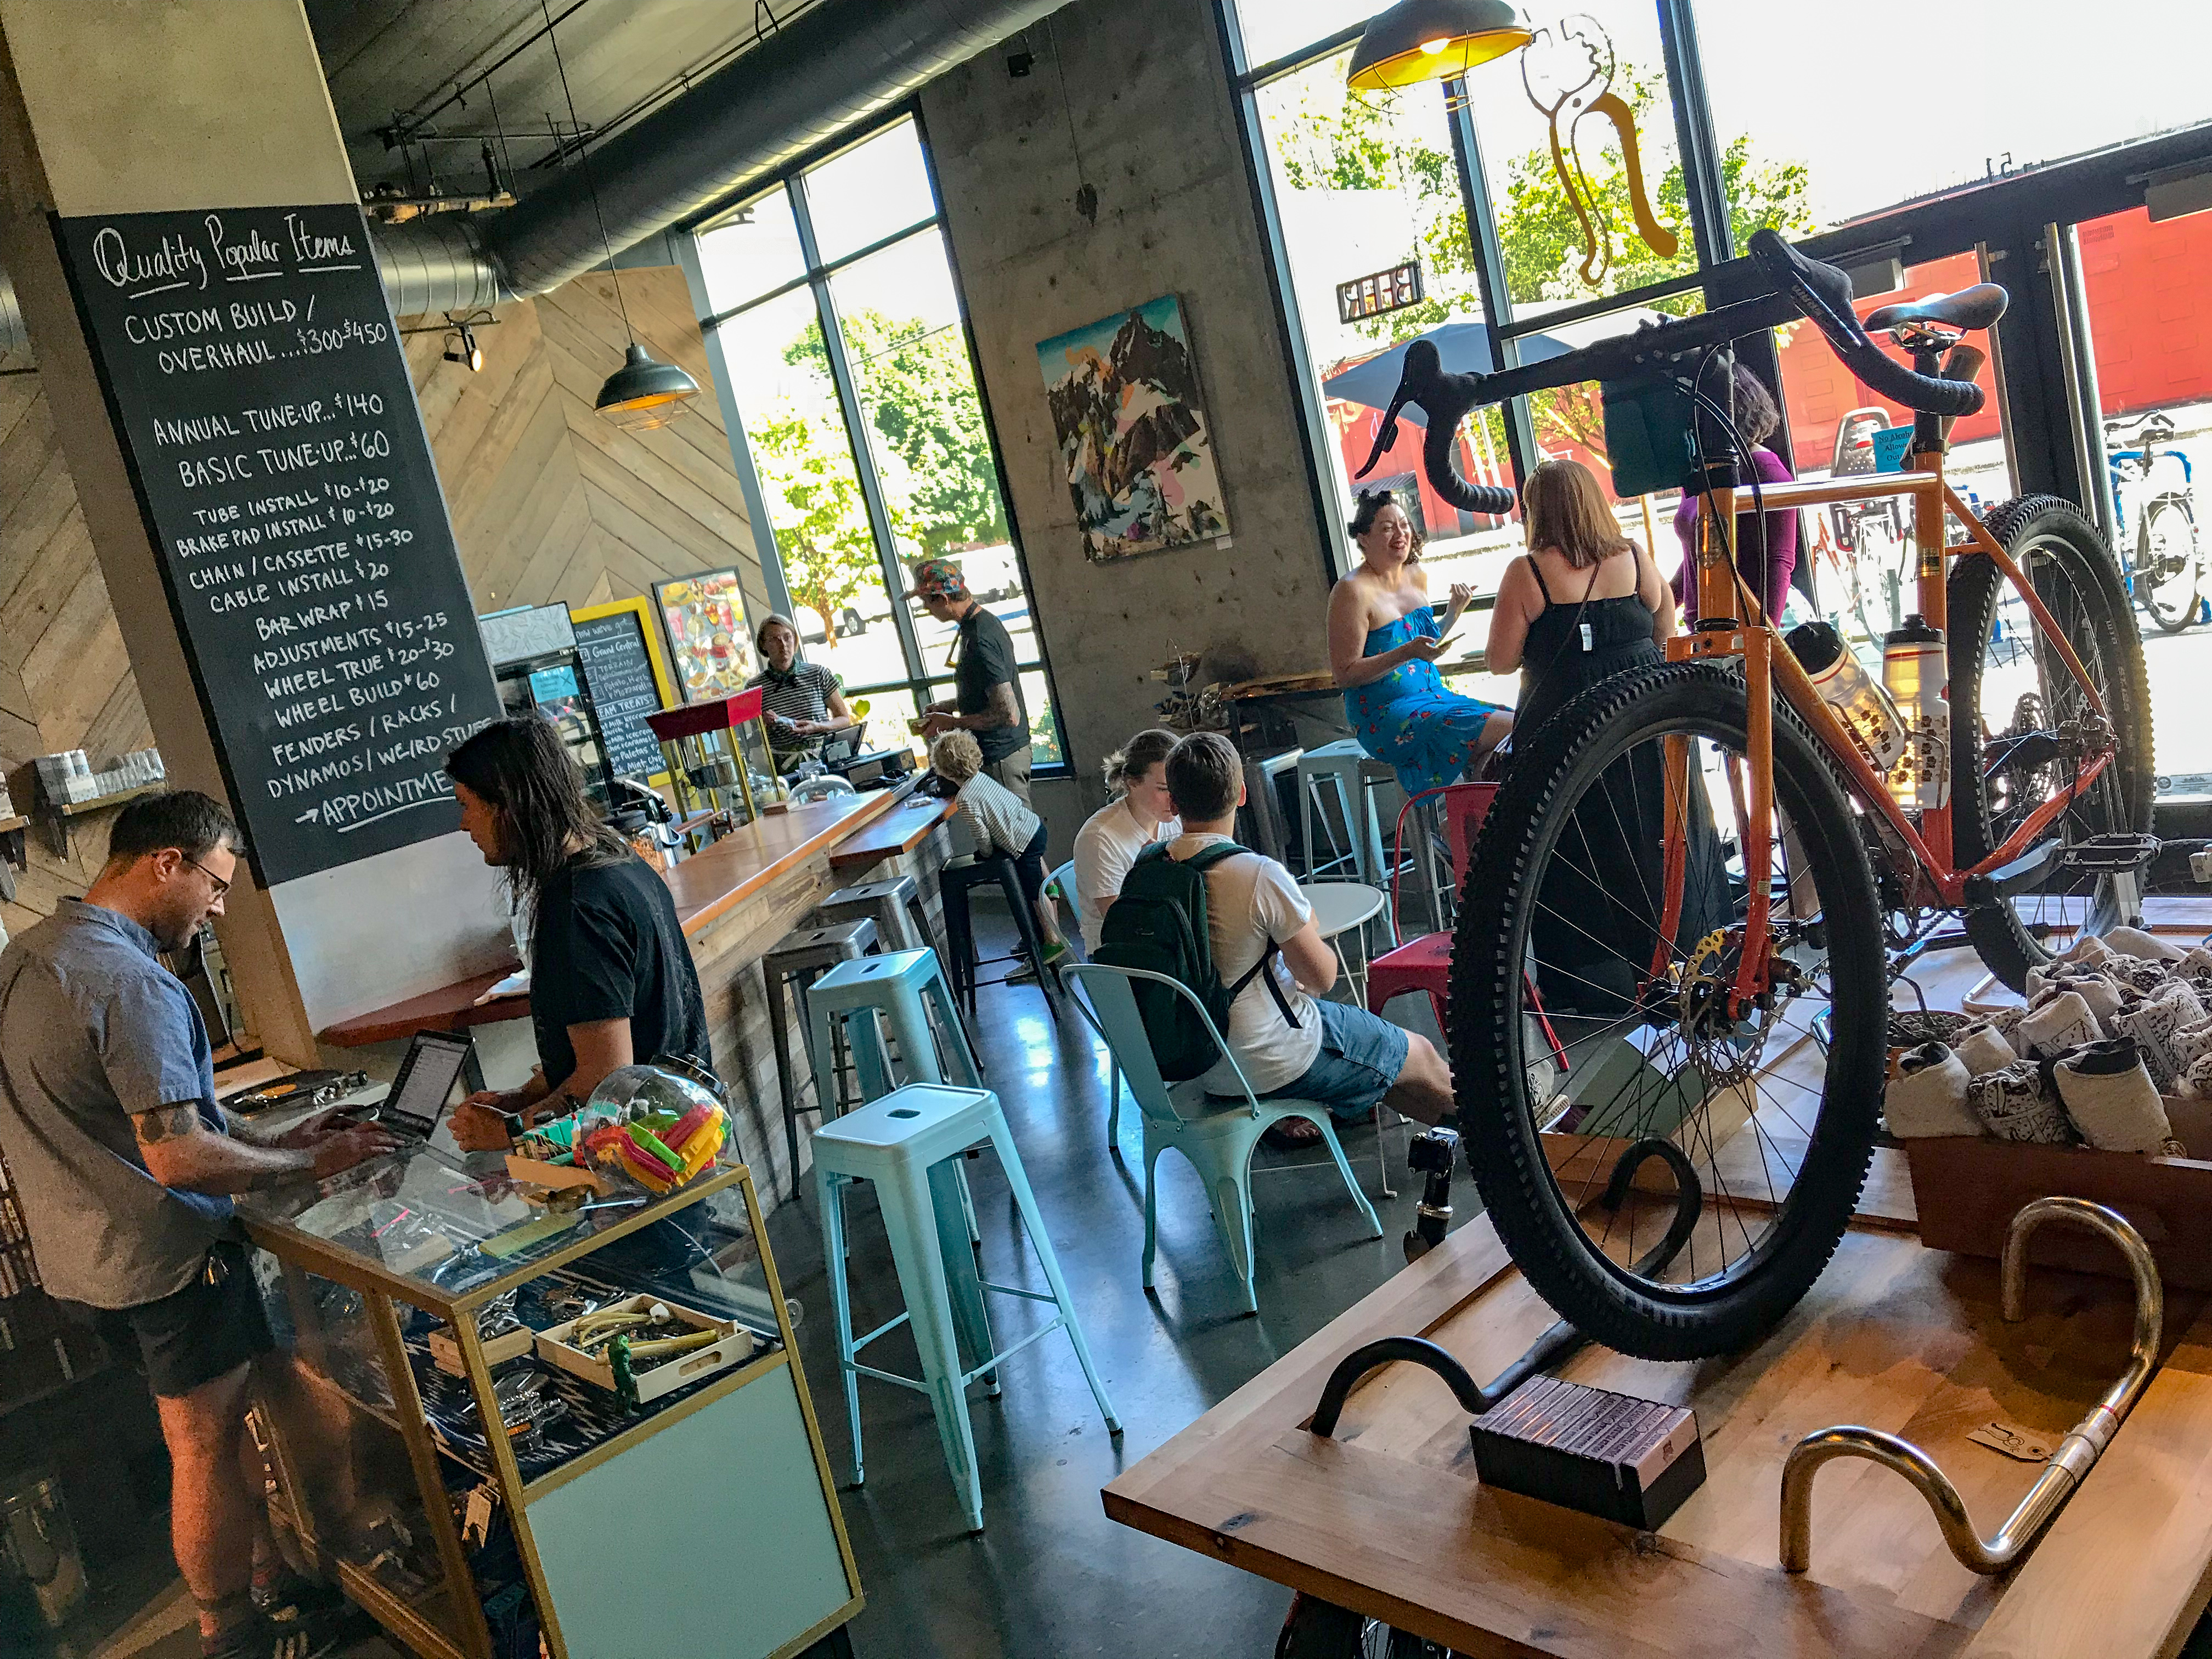 A Bike Store Golden Pliers A Bike Shop And Cafe Opens On North Skidmore At